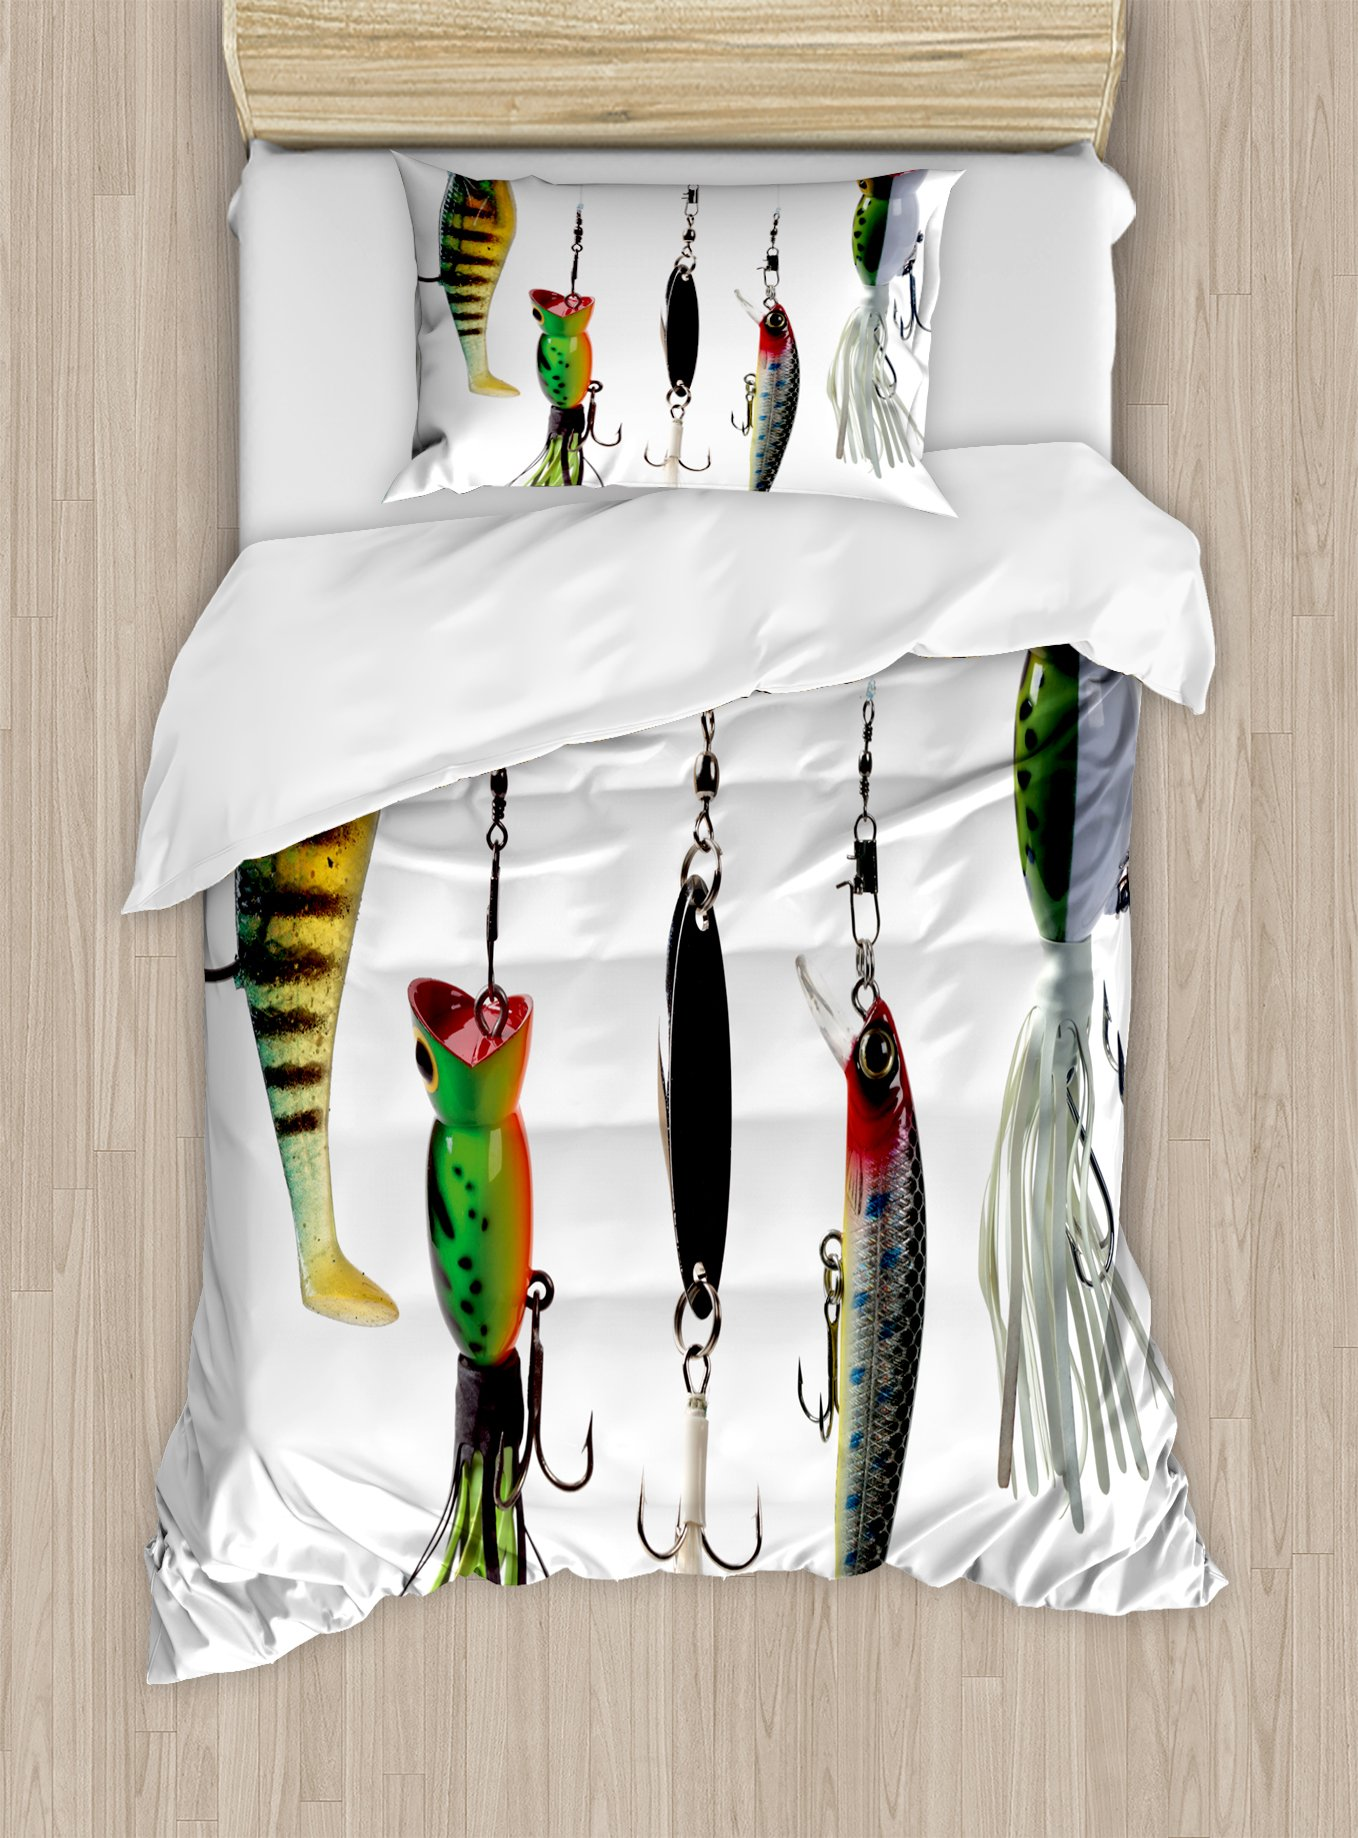 Ambesonne Fishing Duvet Cover Set Twin Size, Various Type of Fishing Baits Hobby Leisure Passtime Sports Hooks Catch Elements, Decorative 2 Piece Bedding Set with 1 Pillow Sham, Multicolor